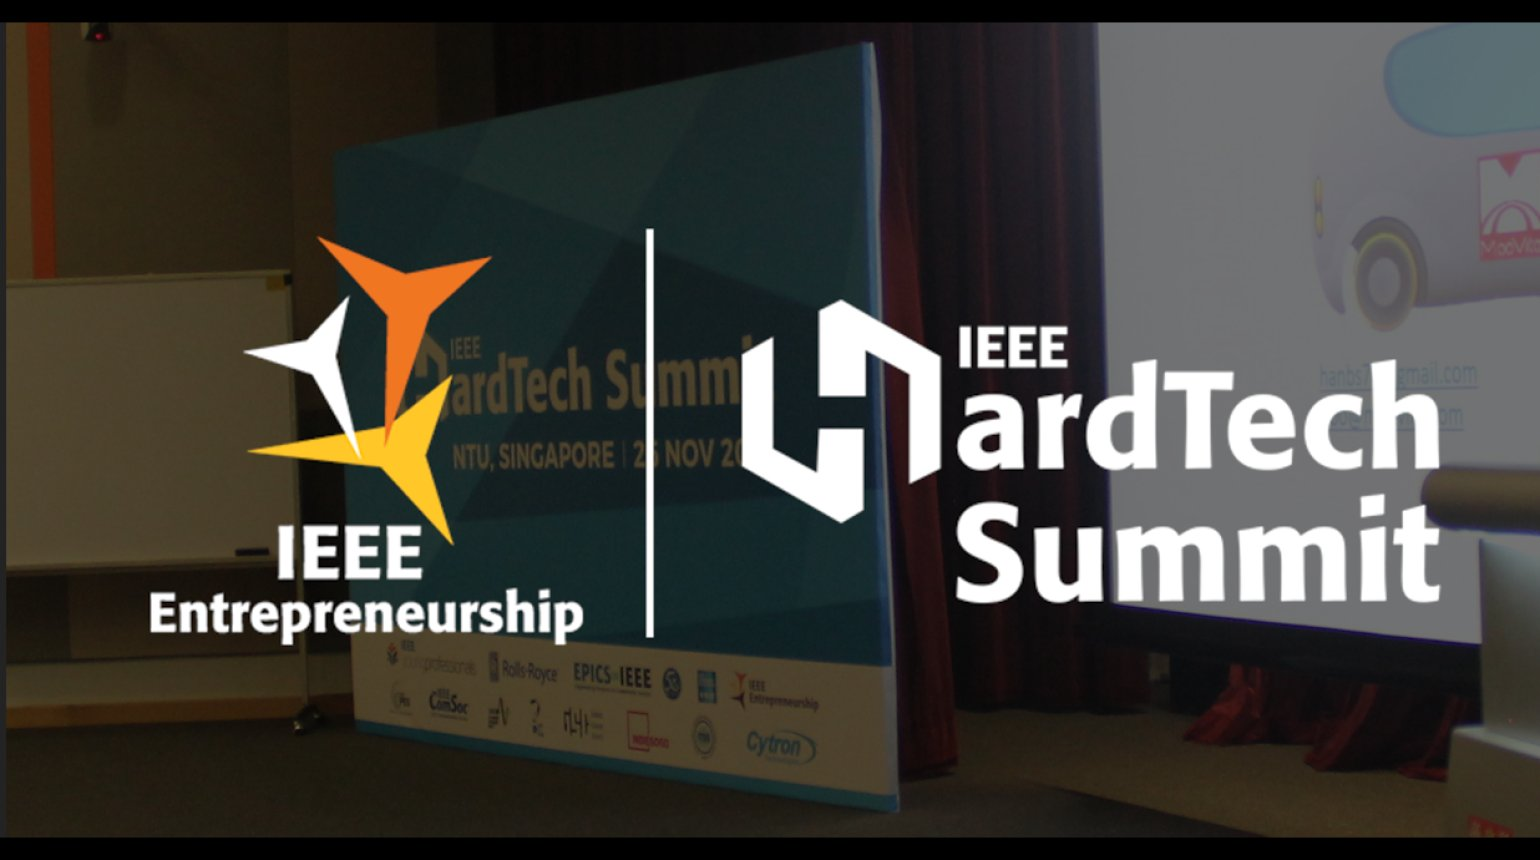 IEEE HardTech Summit 2016: Managing Energy For The Better